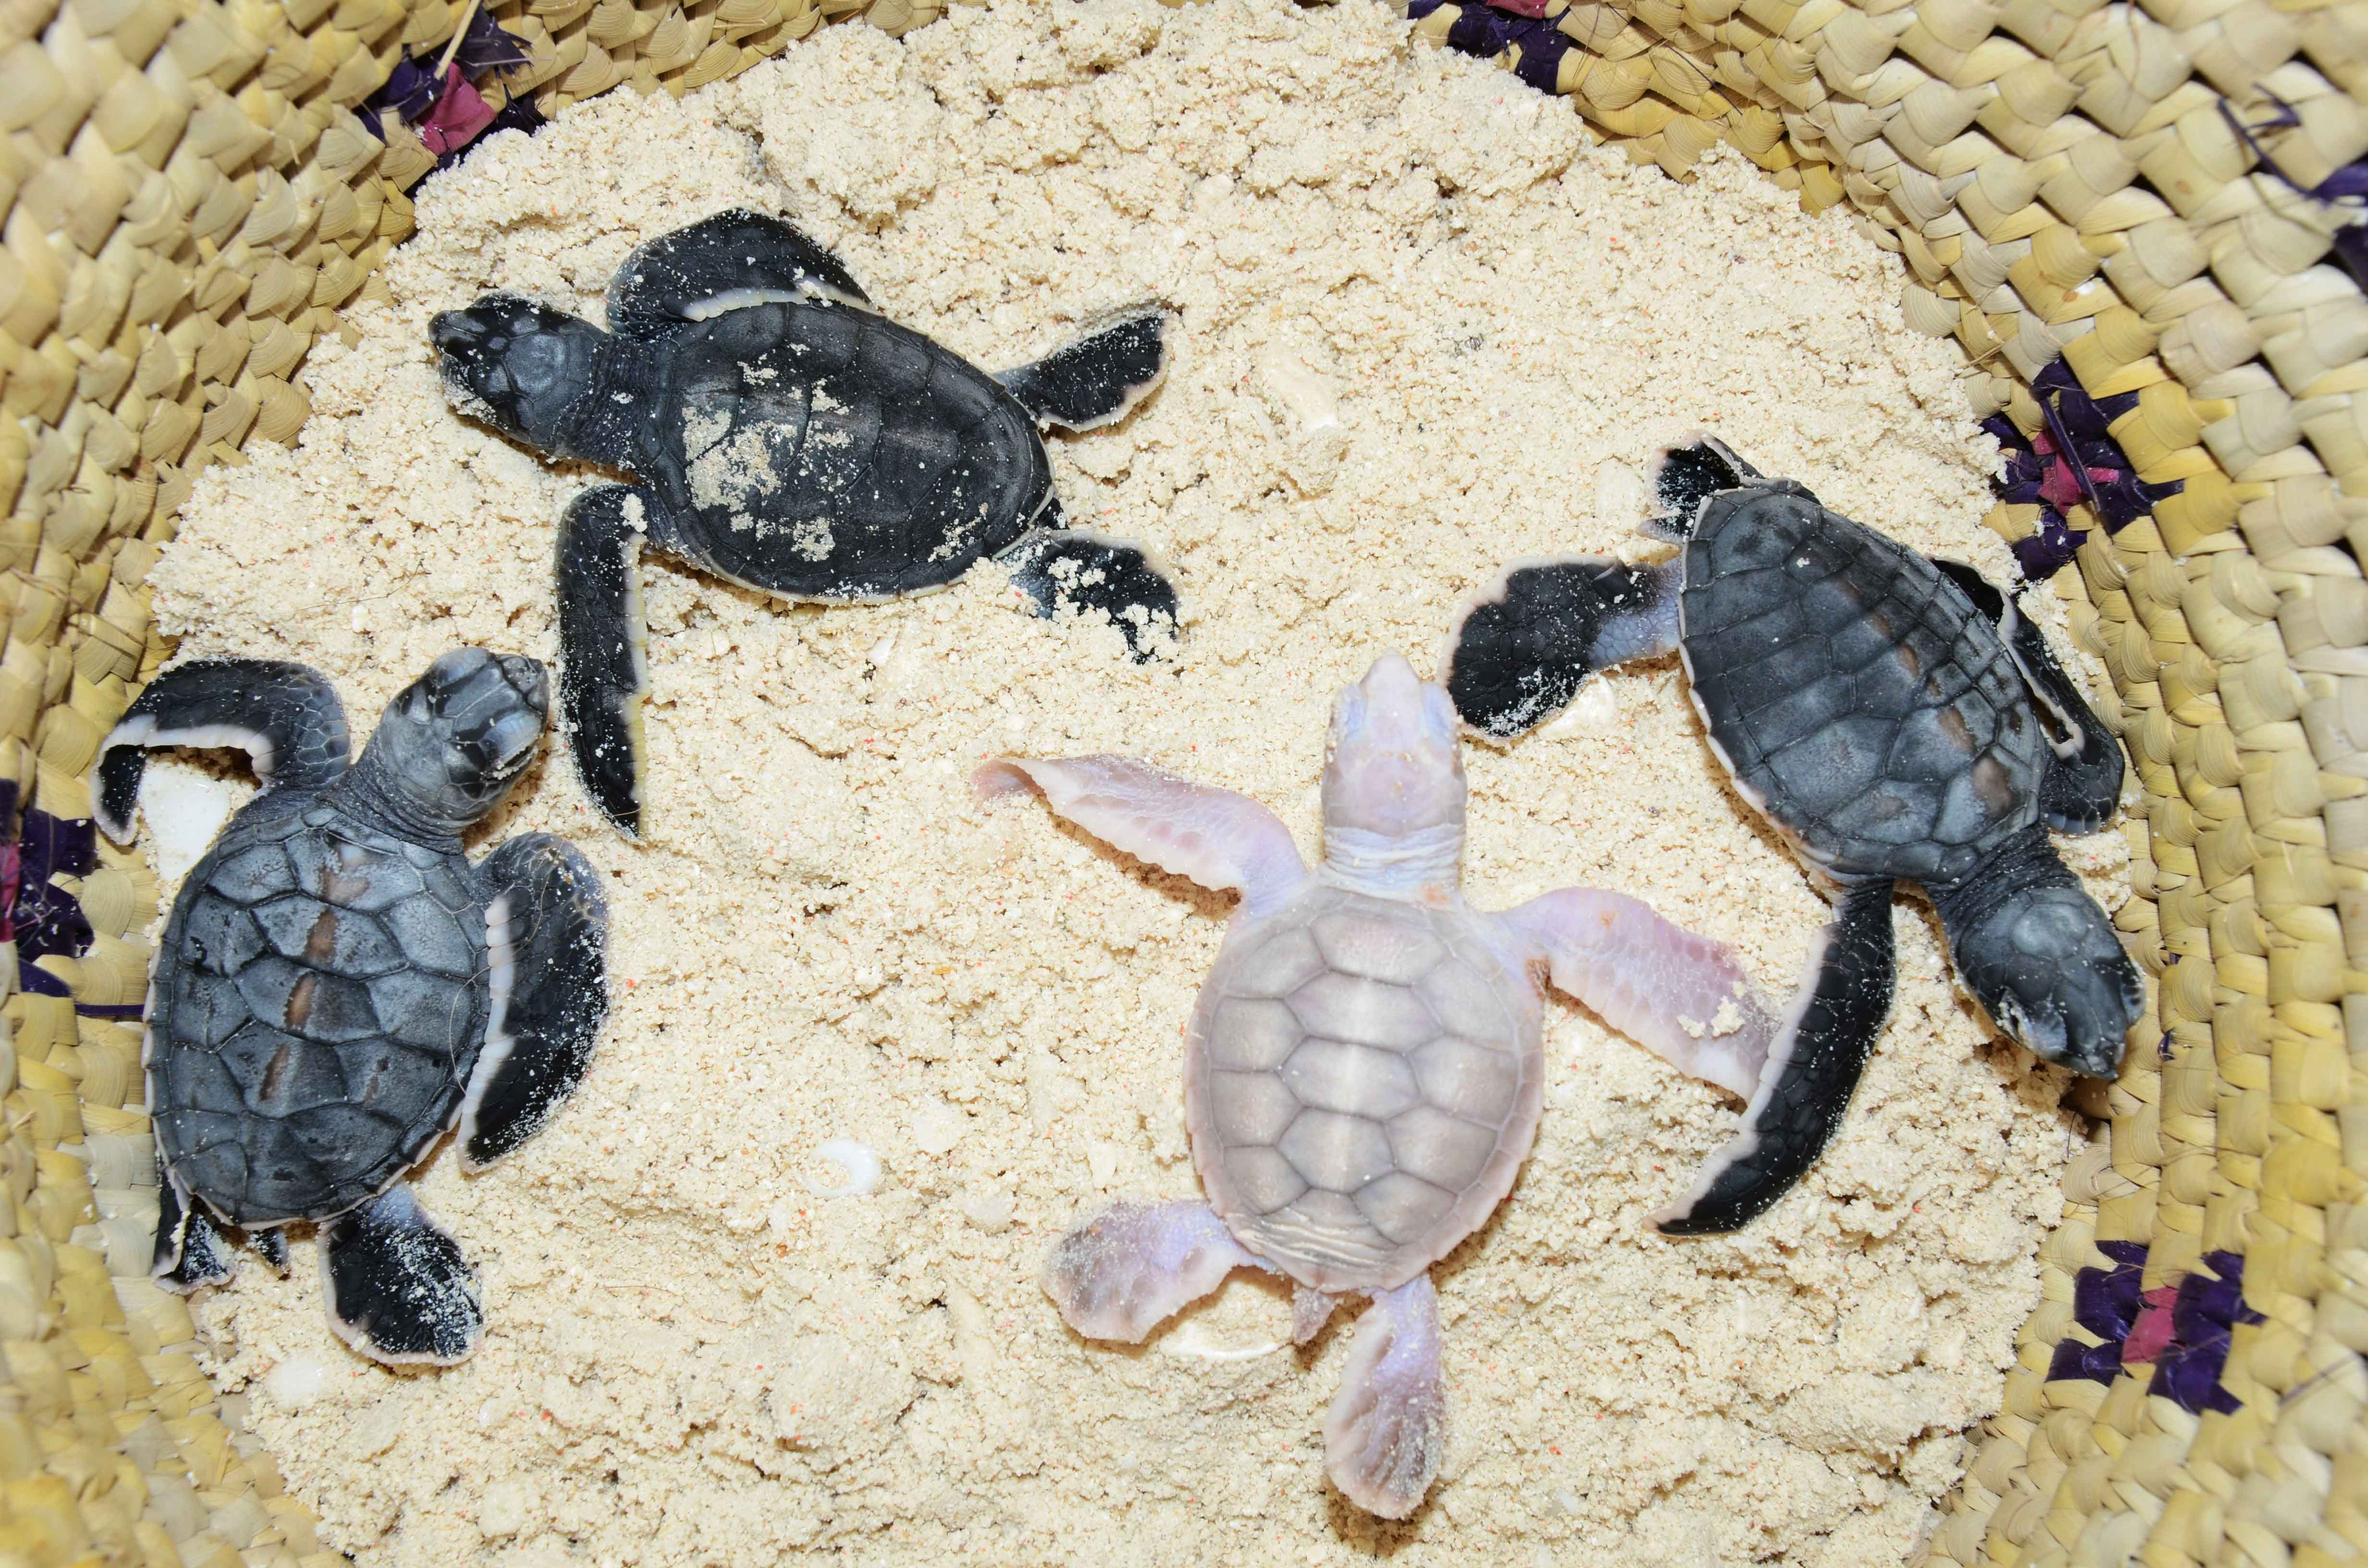 Baby-turtles-and-a-rare-case-of-albinism1